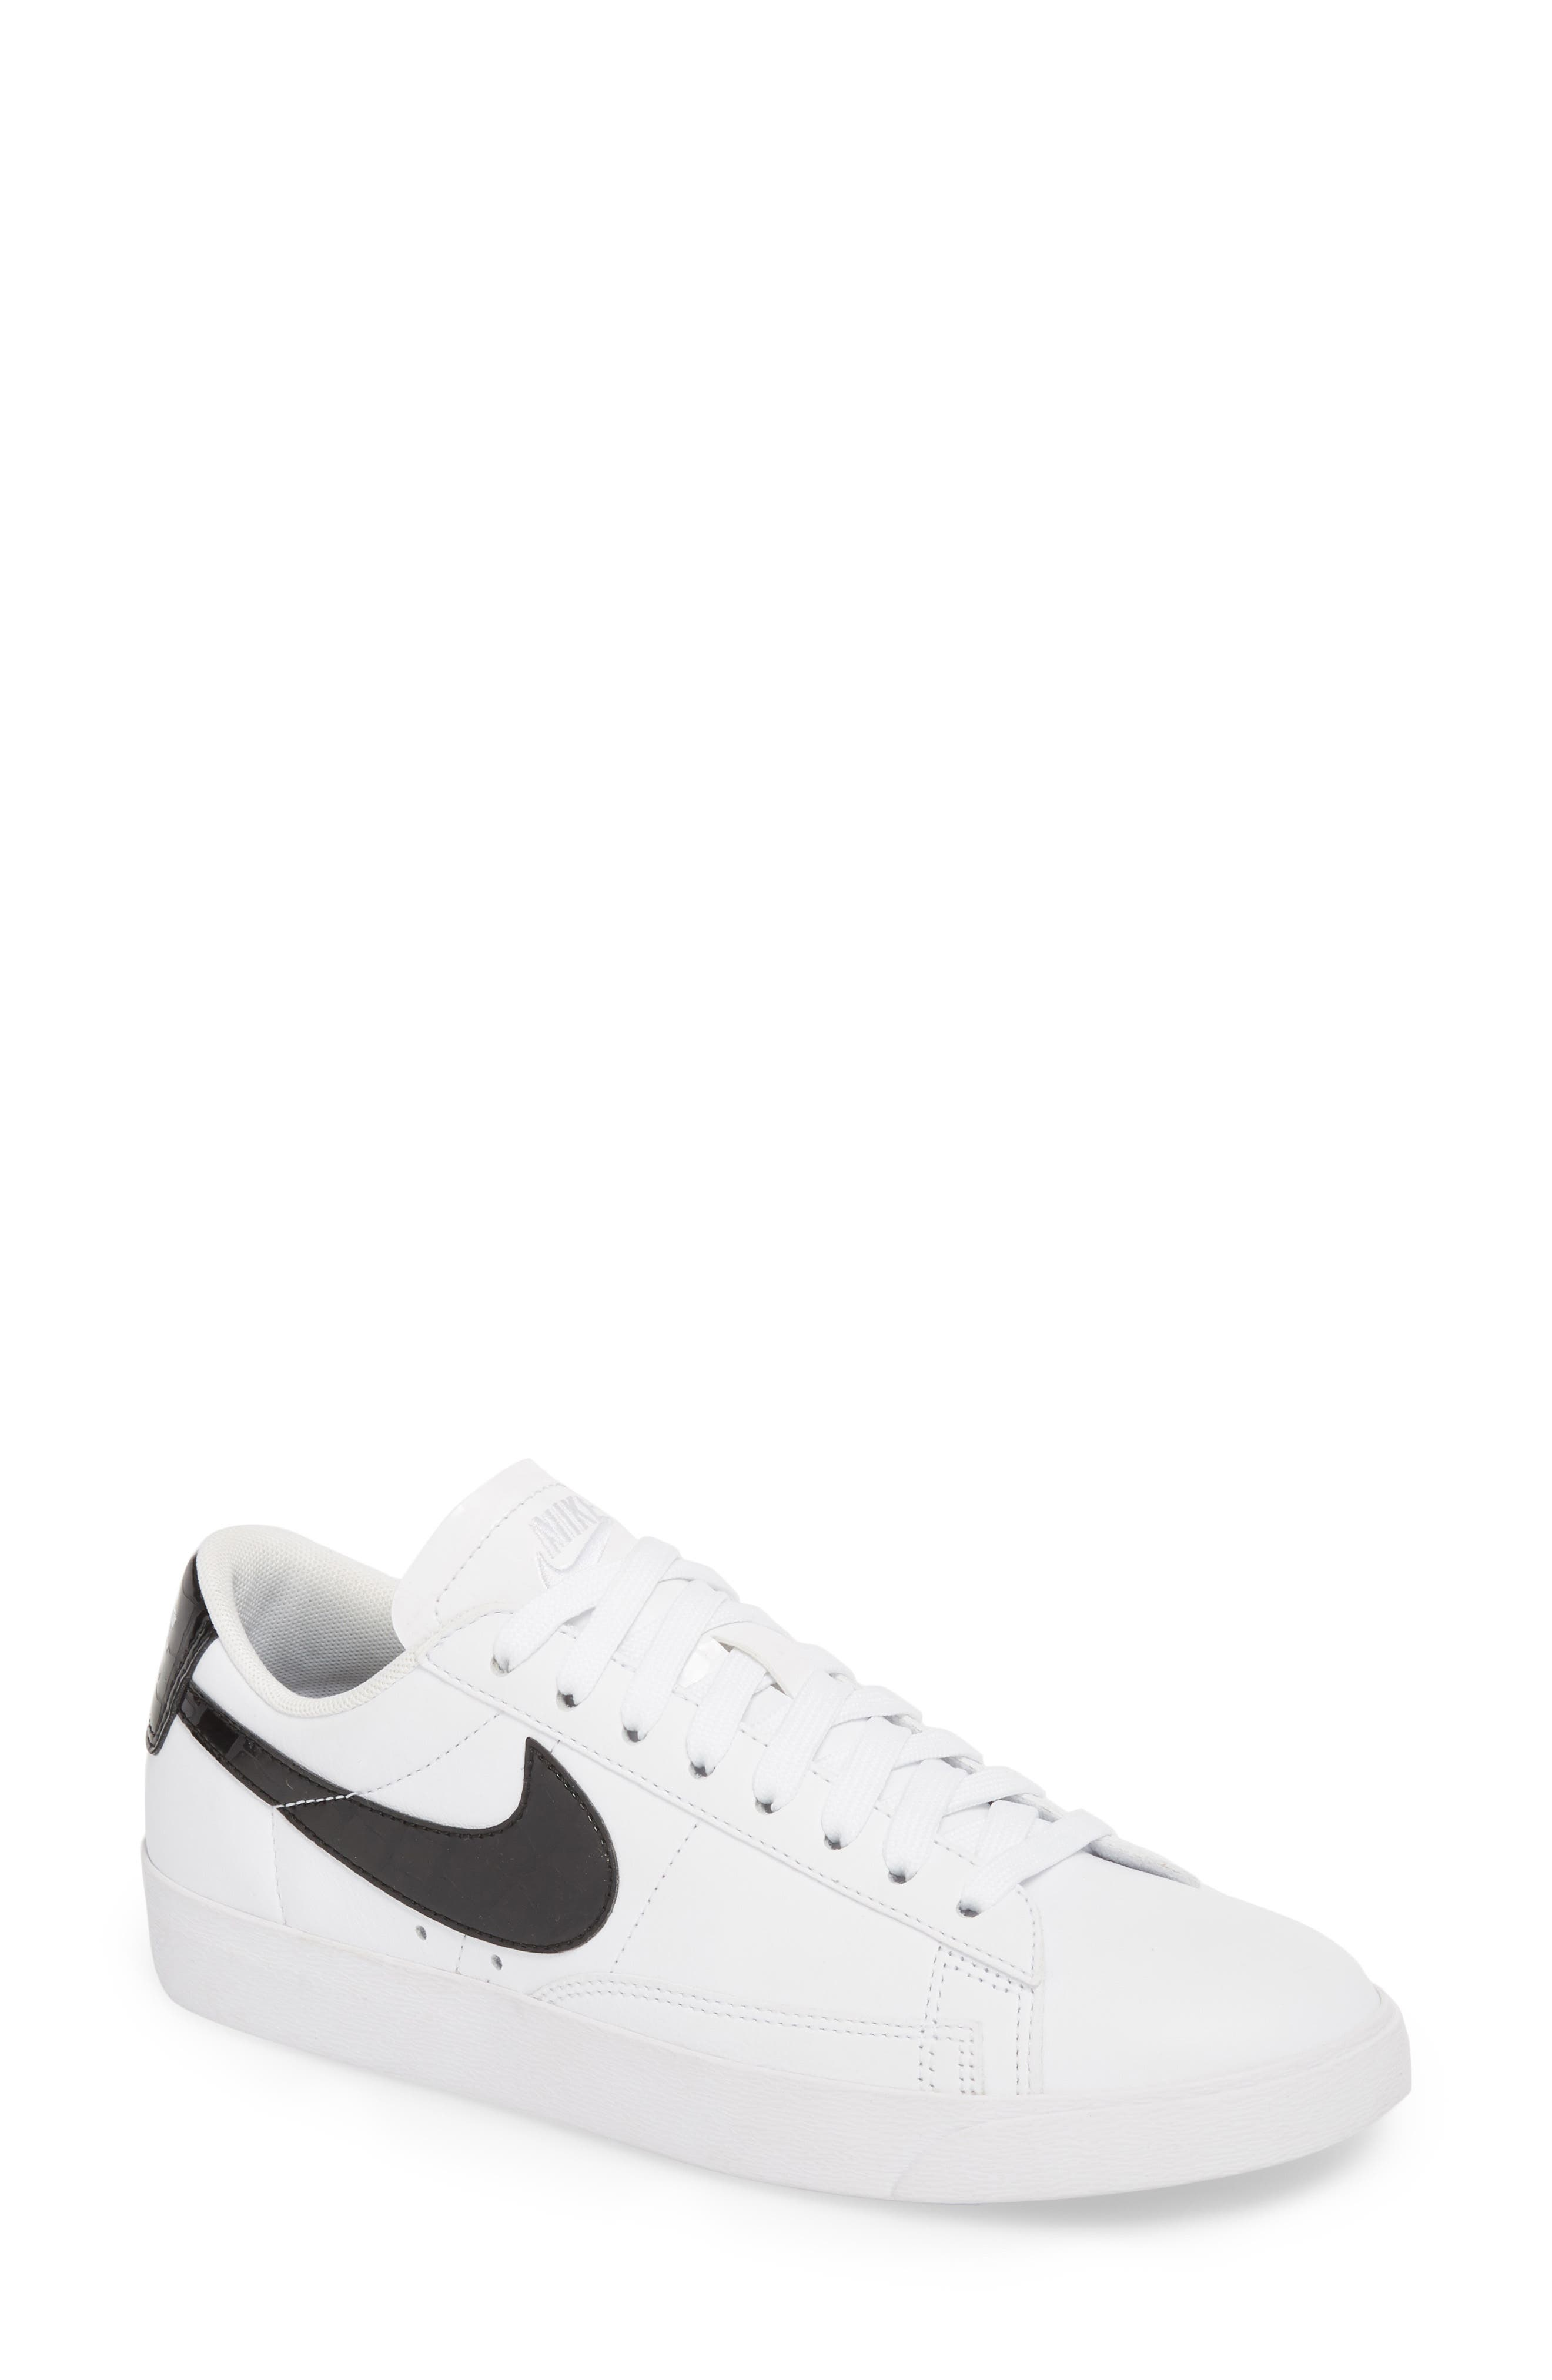 NIKE Blazer Low Essential Sneaker, Main, color, 100